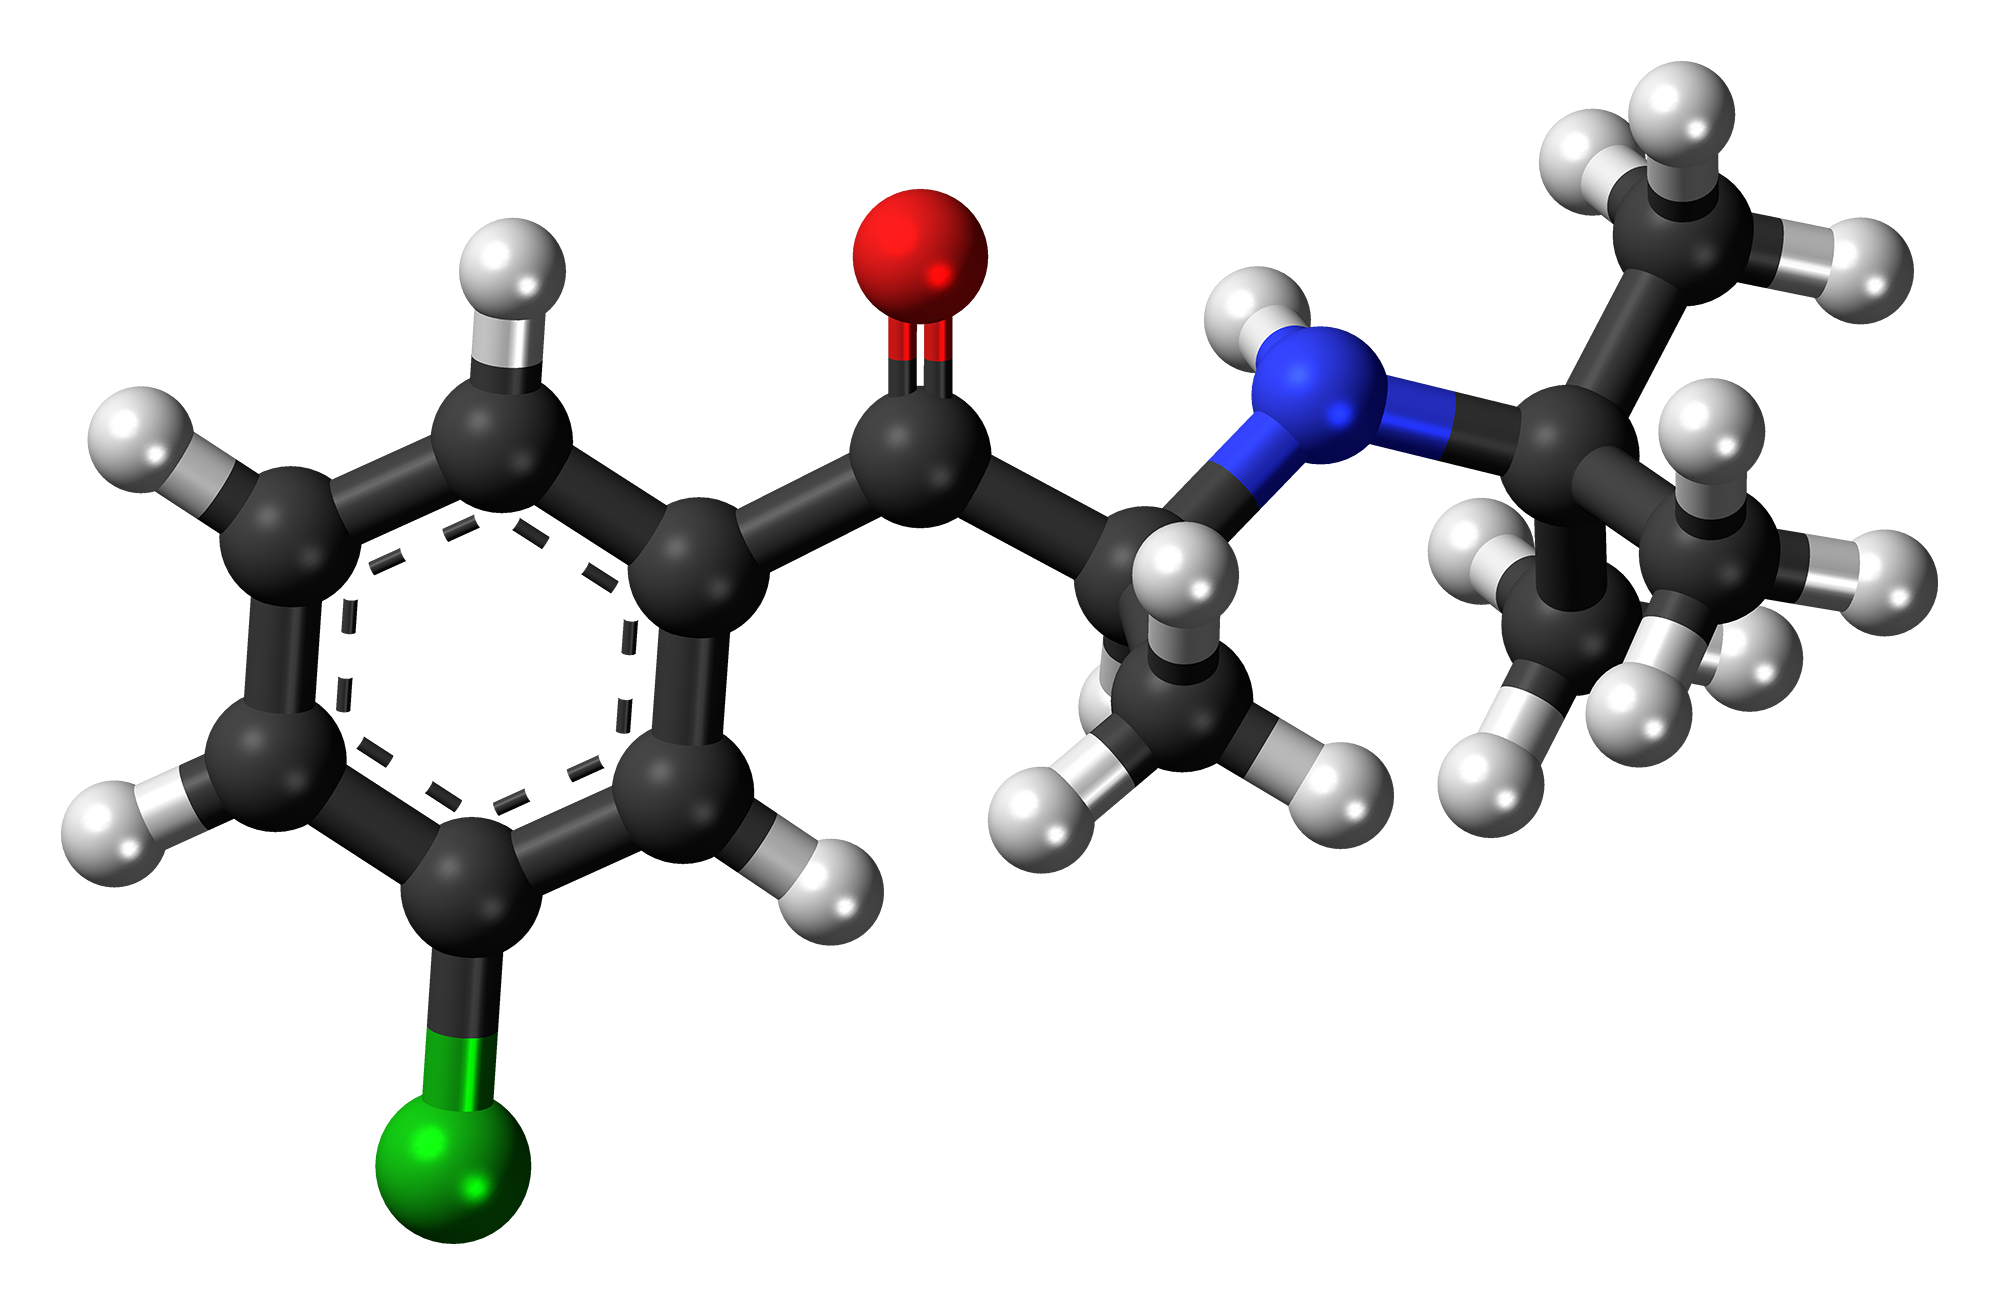 Doxy and ivermectin